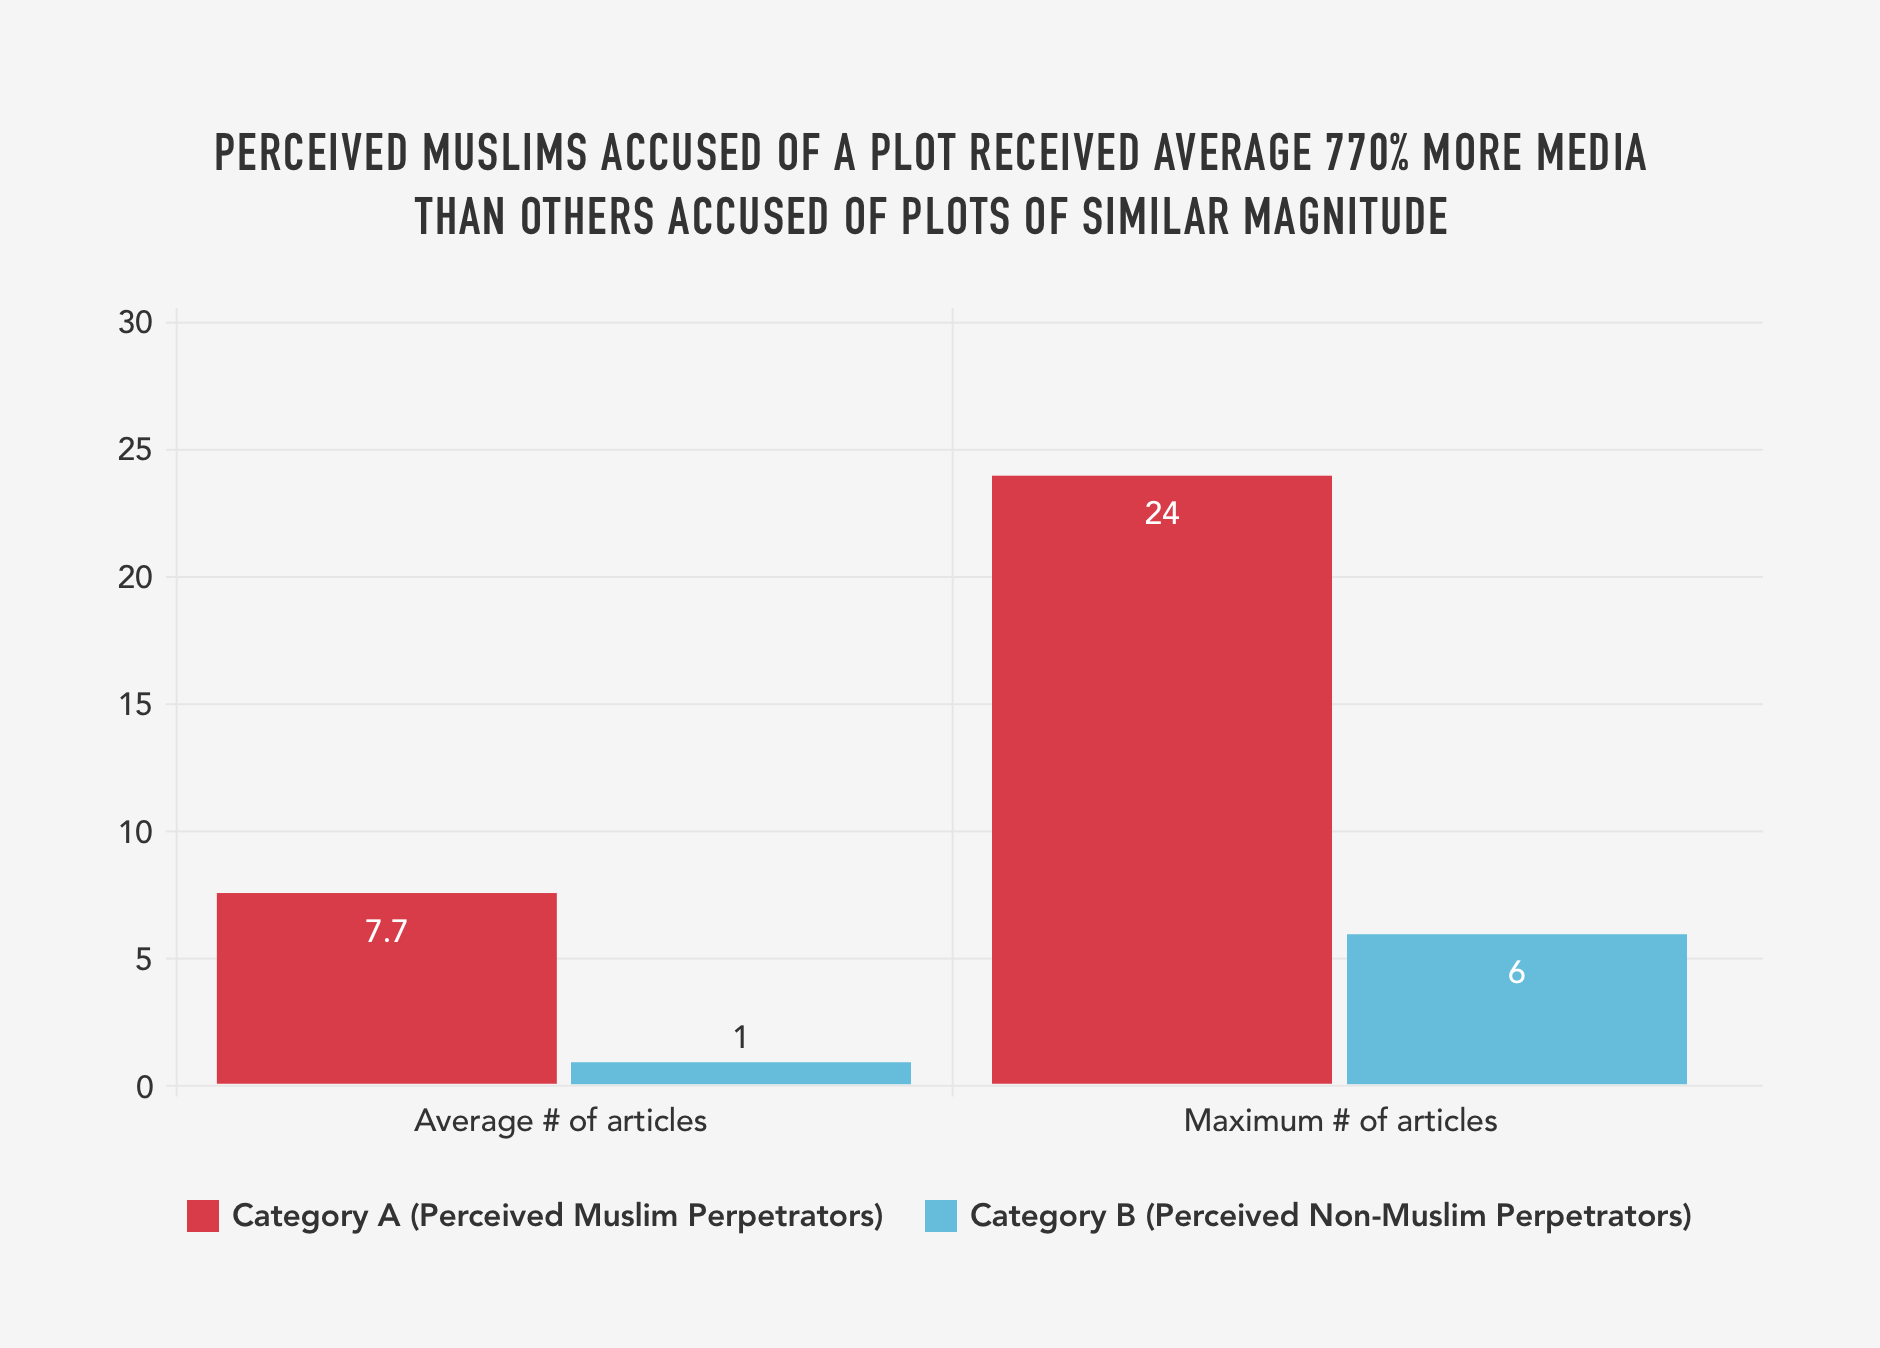 5. PERCEIVED MUSLIMS ACCUSED OF A PLOT RECEIVED AVERAGE 770% MORE MEDIA  THAN OTHERS ACCUSED OF PLOTS OF SIMILAR MAGNITUDE (ARTICLES).png